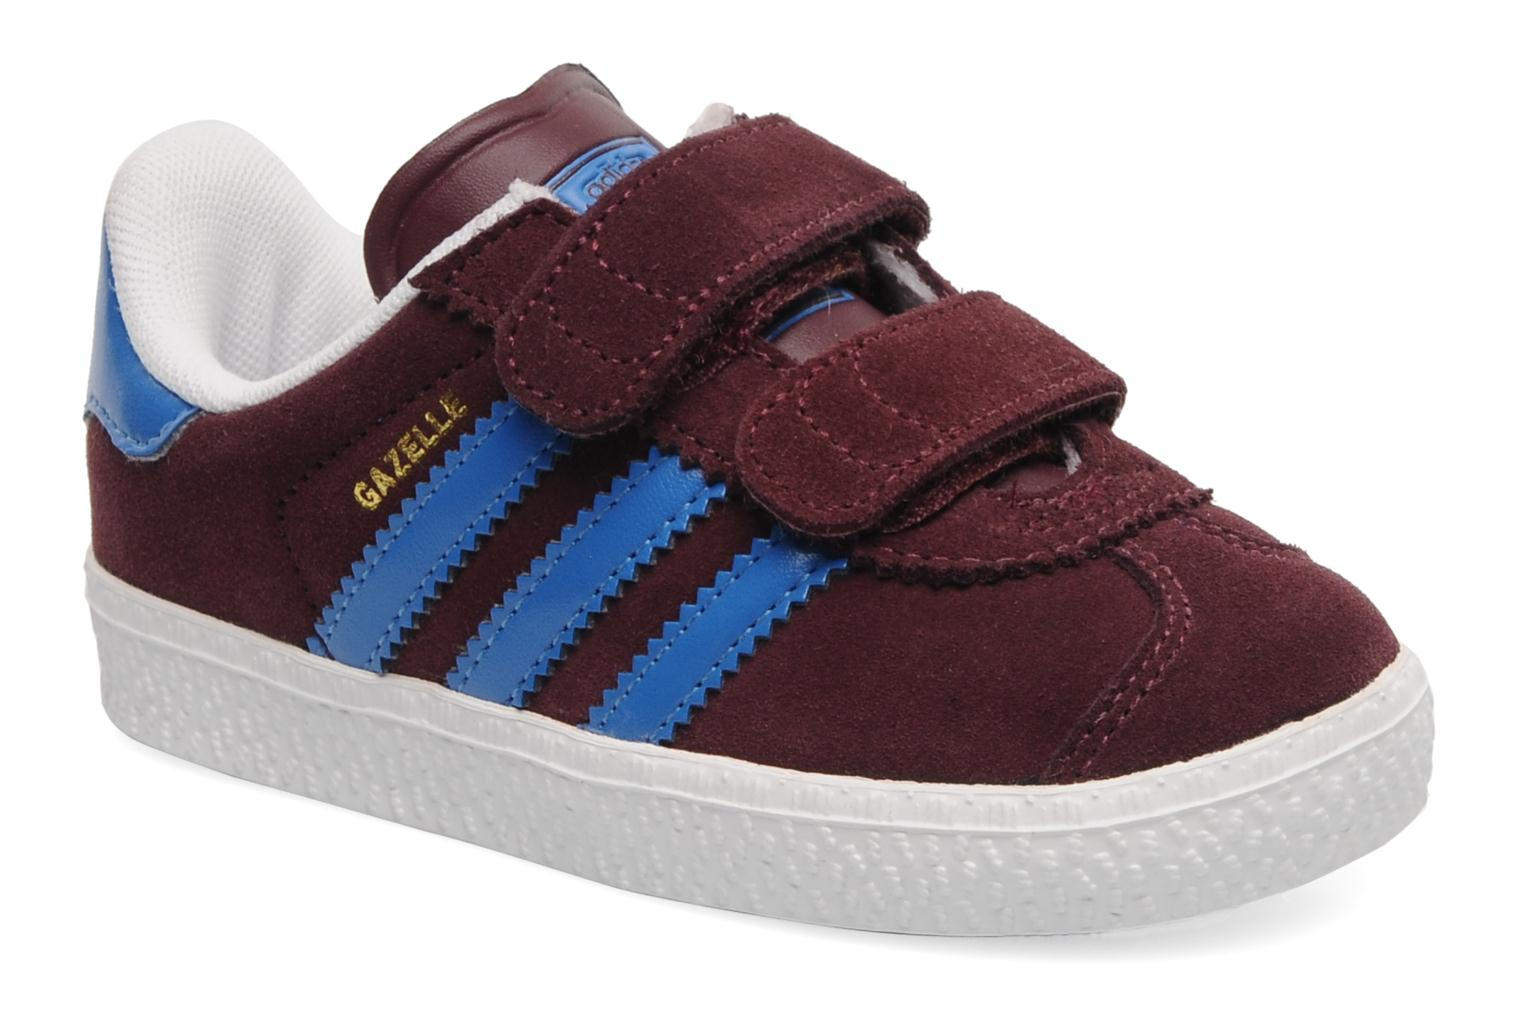 2 I Chez Sarenza Originals Gazelle bordeaux Baskets Adidas Cf w8IE00